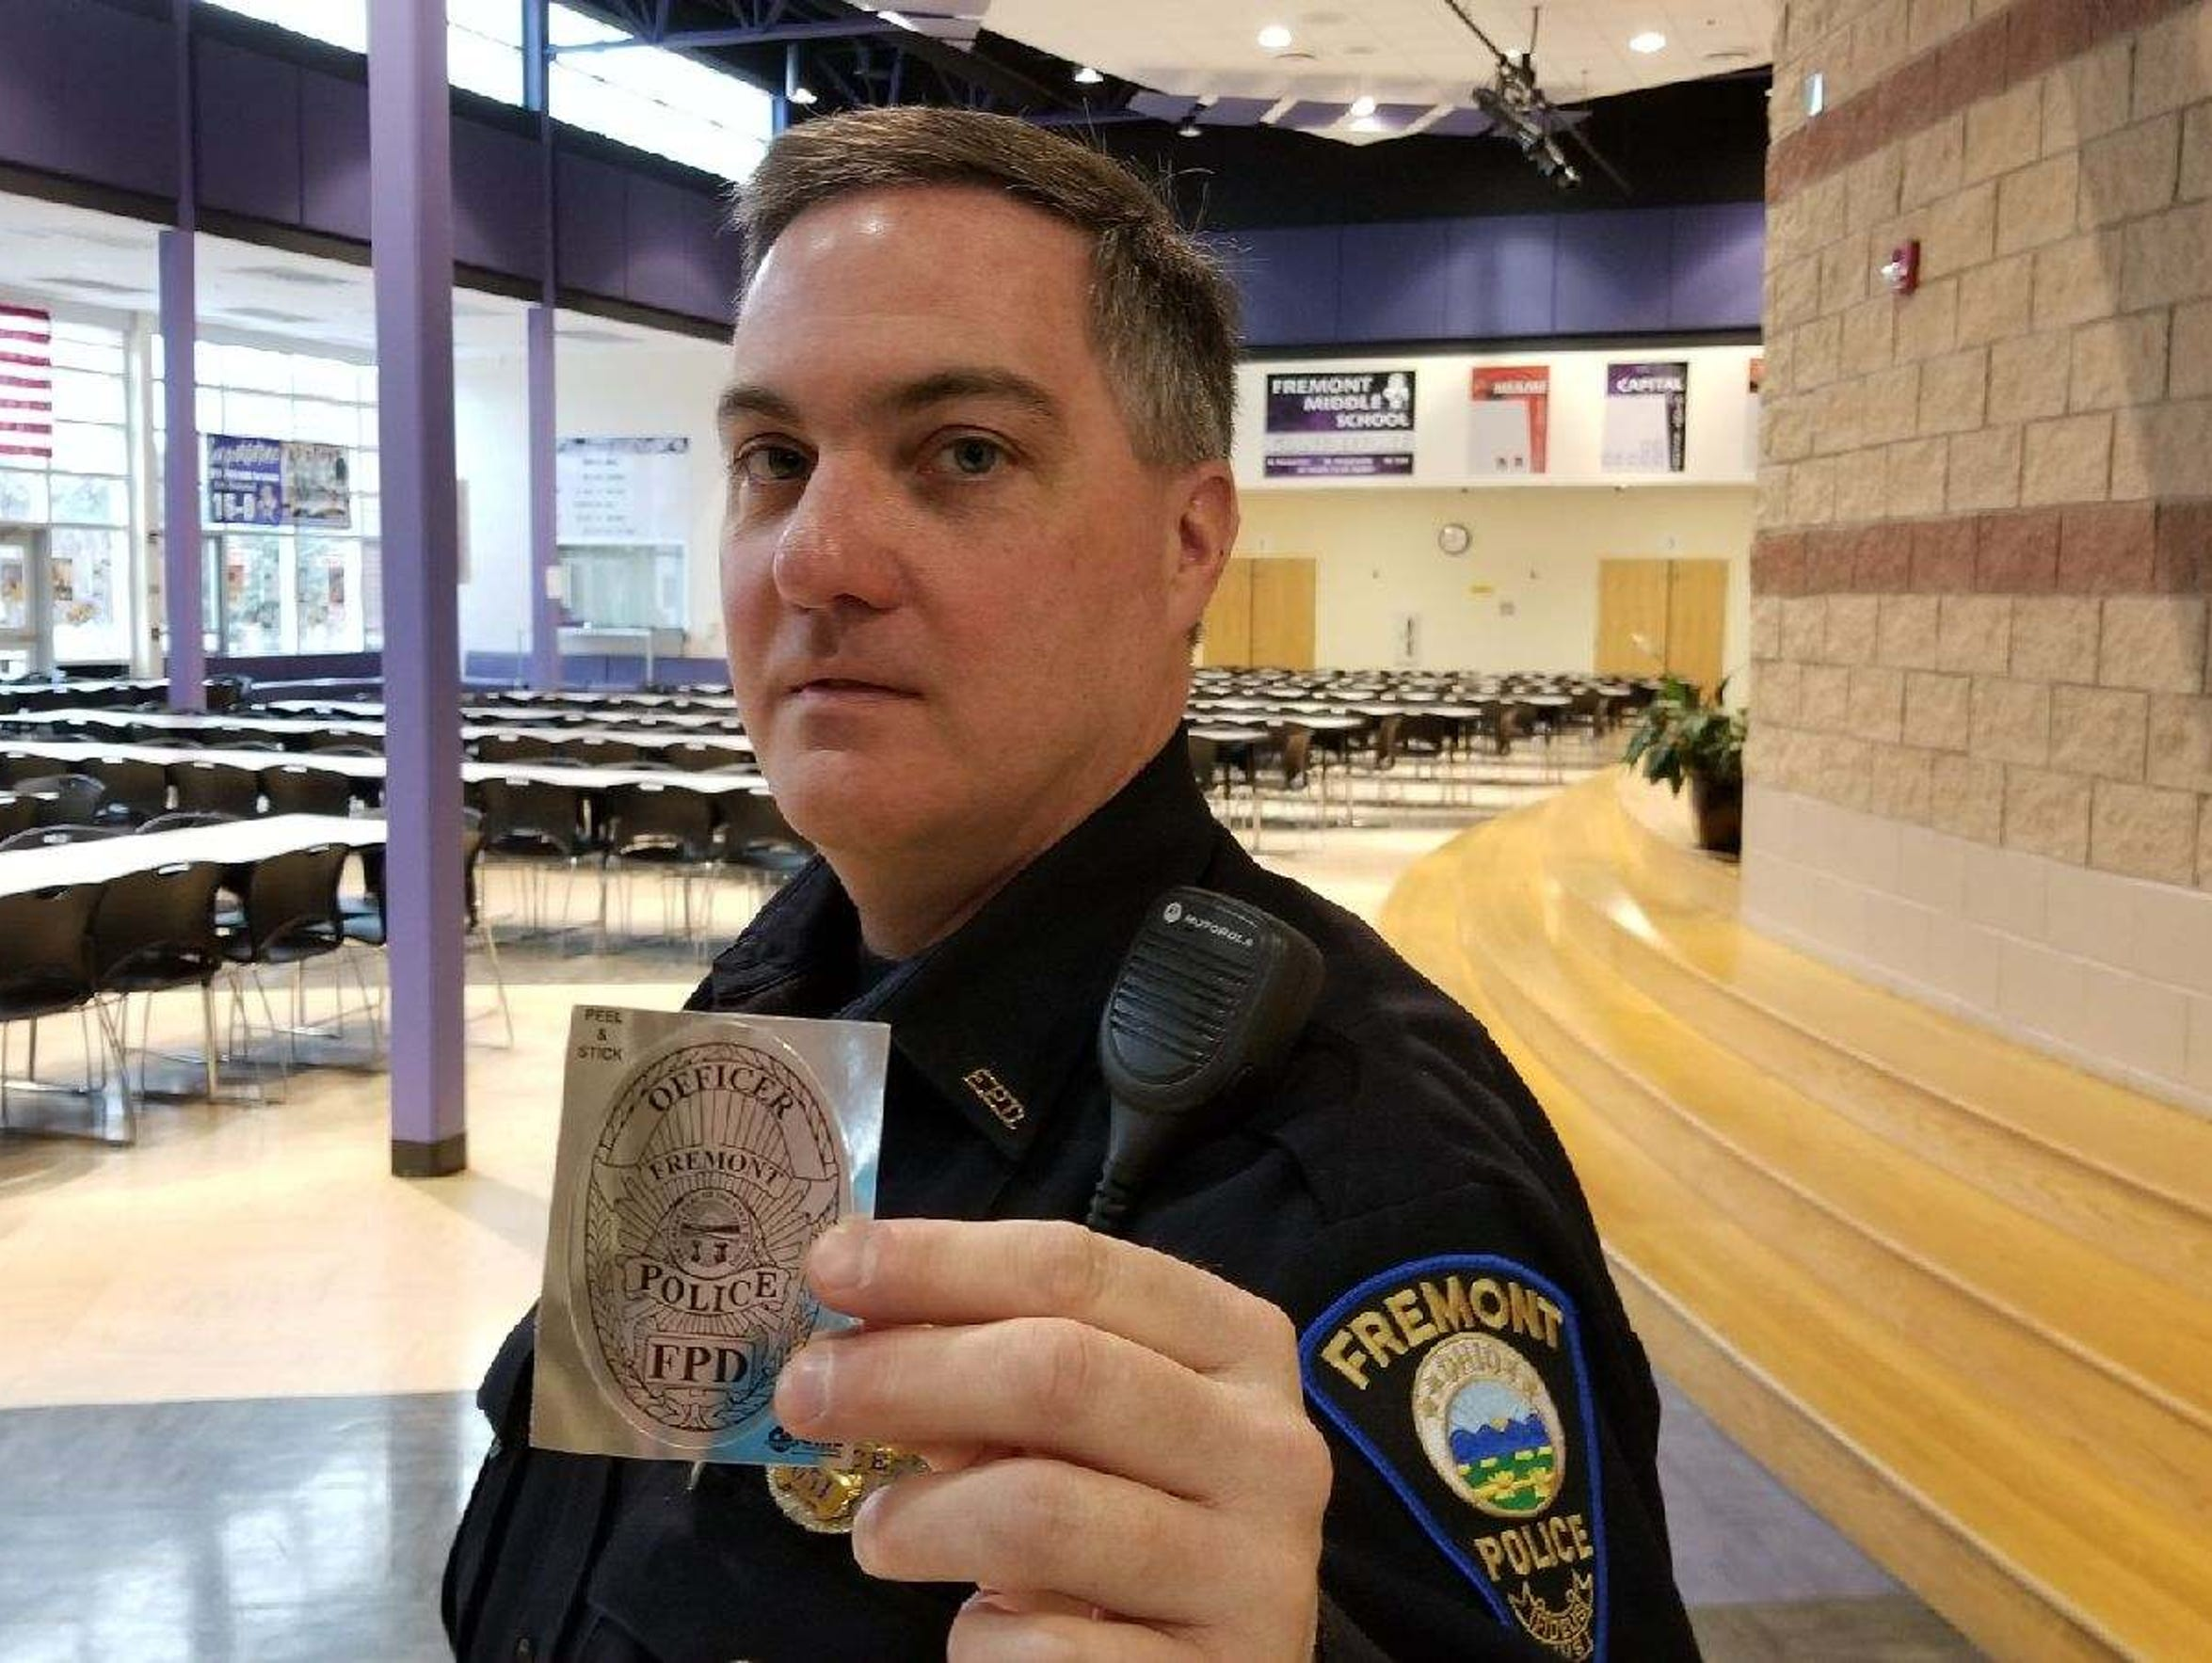 School Resource Officer Jim Burkin has been handing